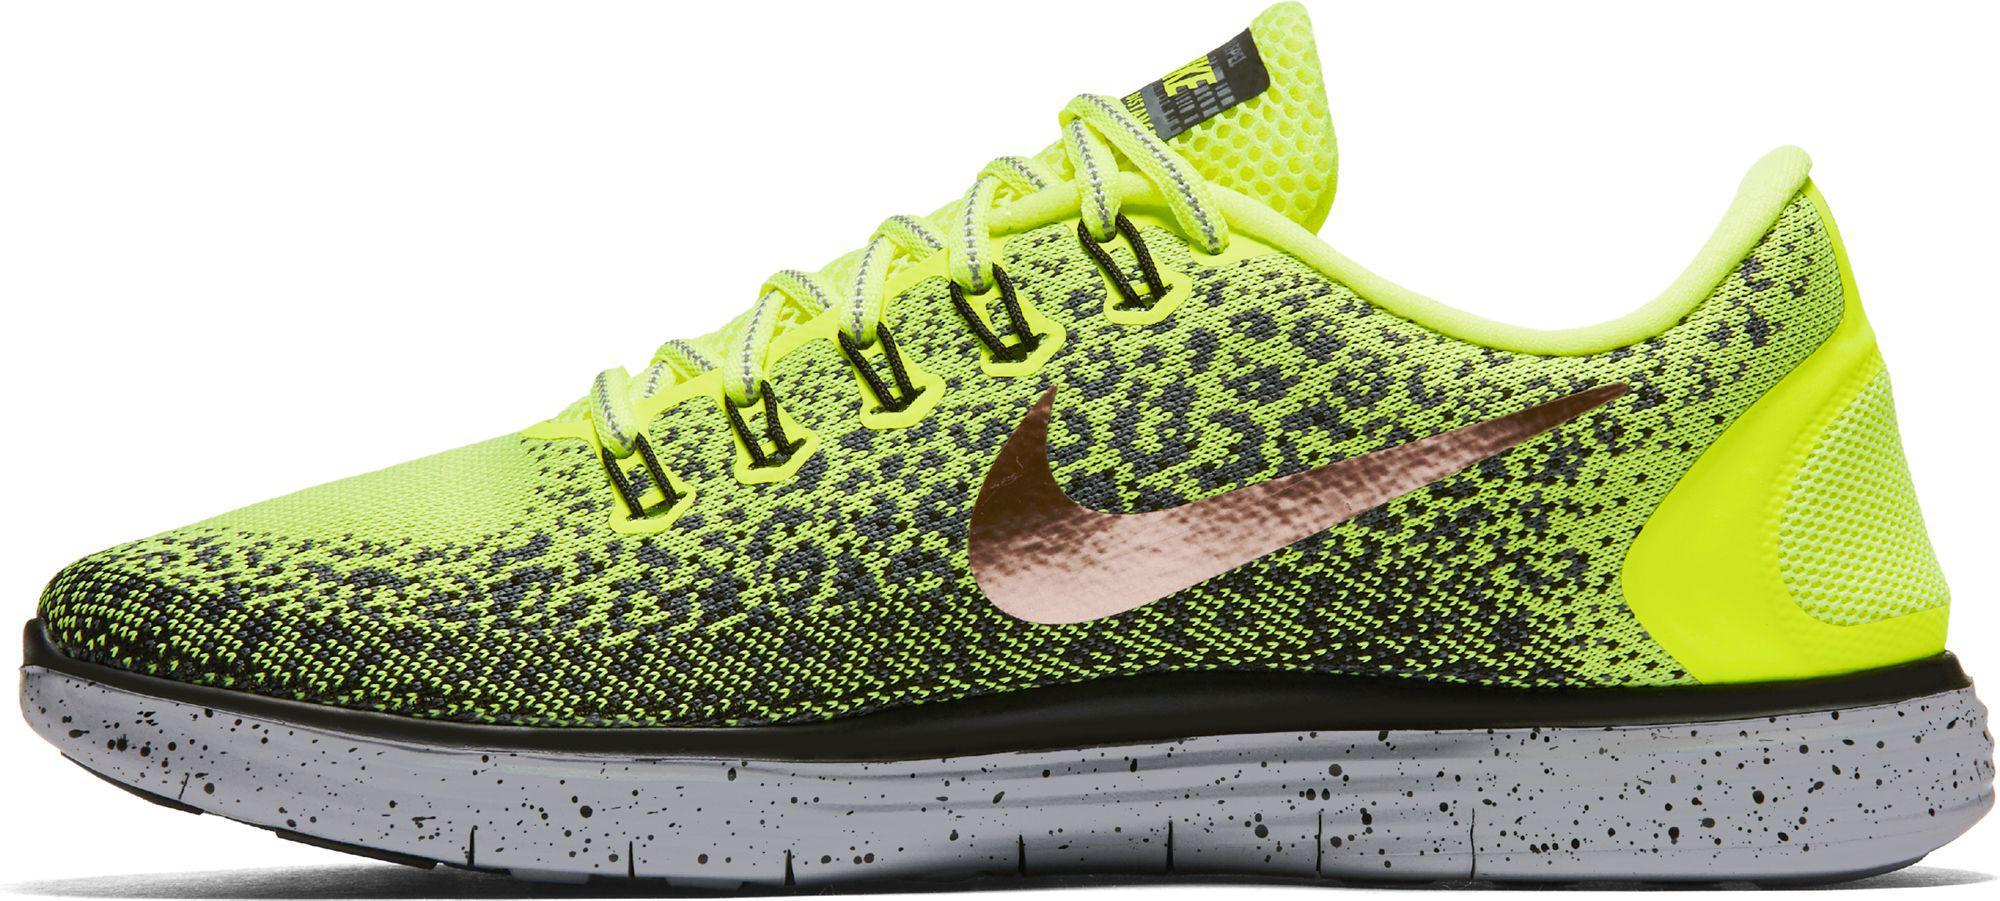 Shield Run Distance for Chaussures Homme Nike in Running Lyst Green Free qOwBBCI